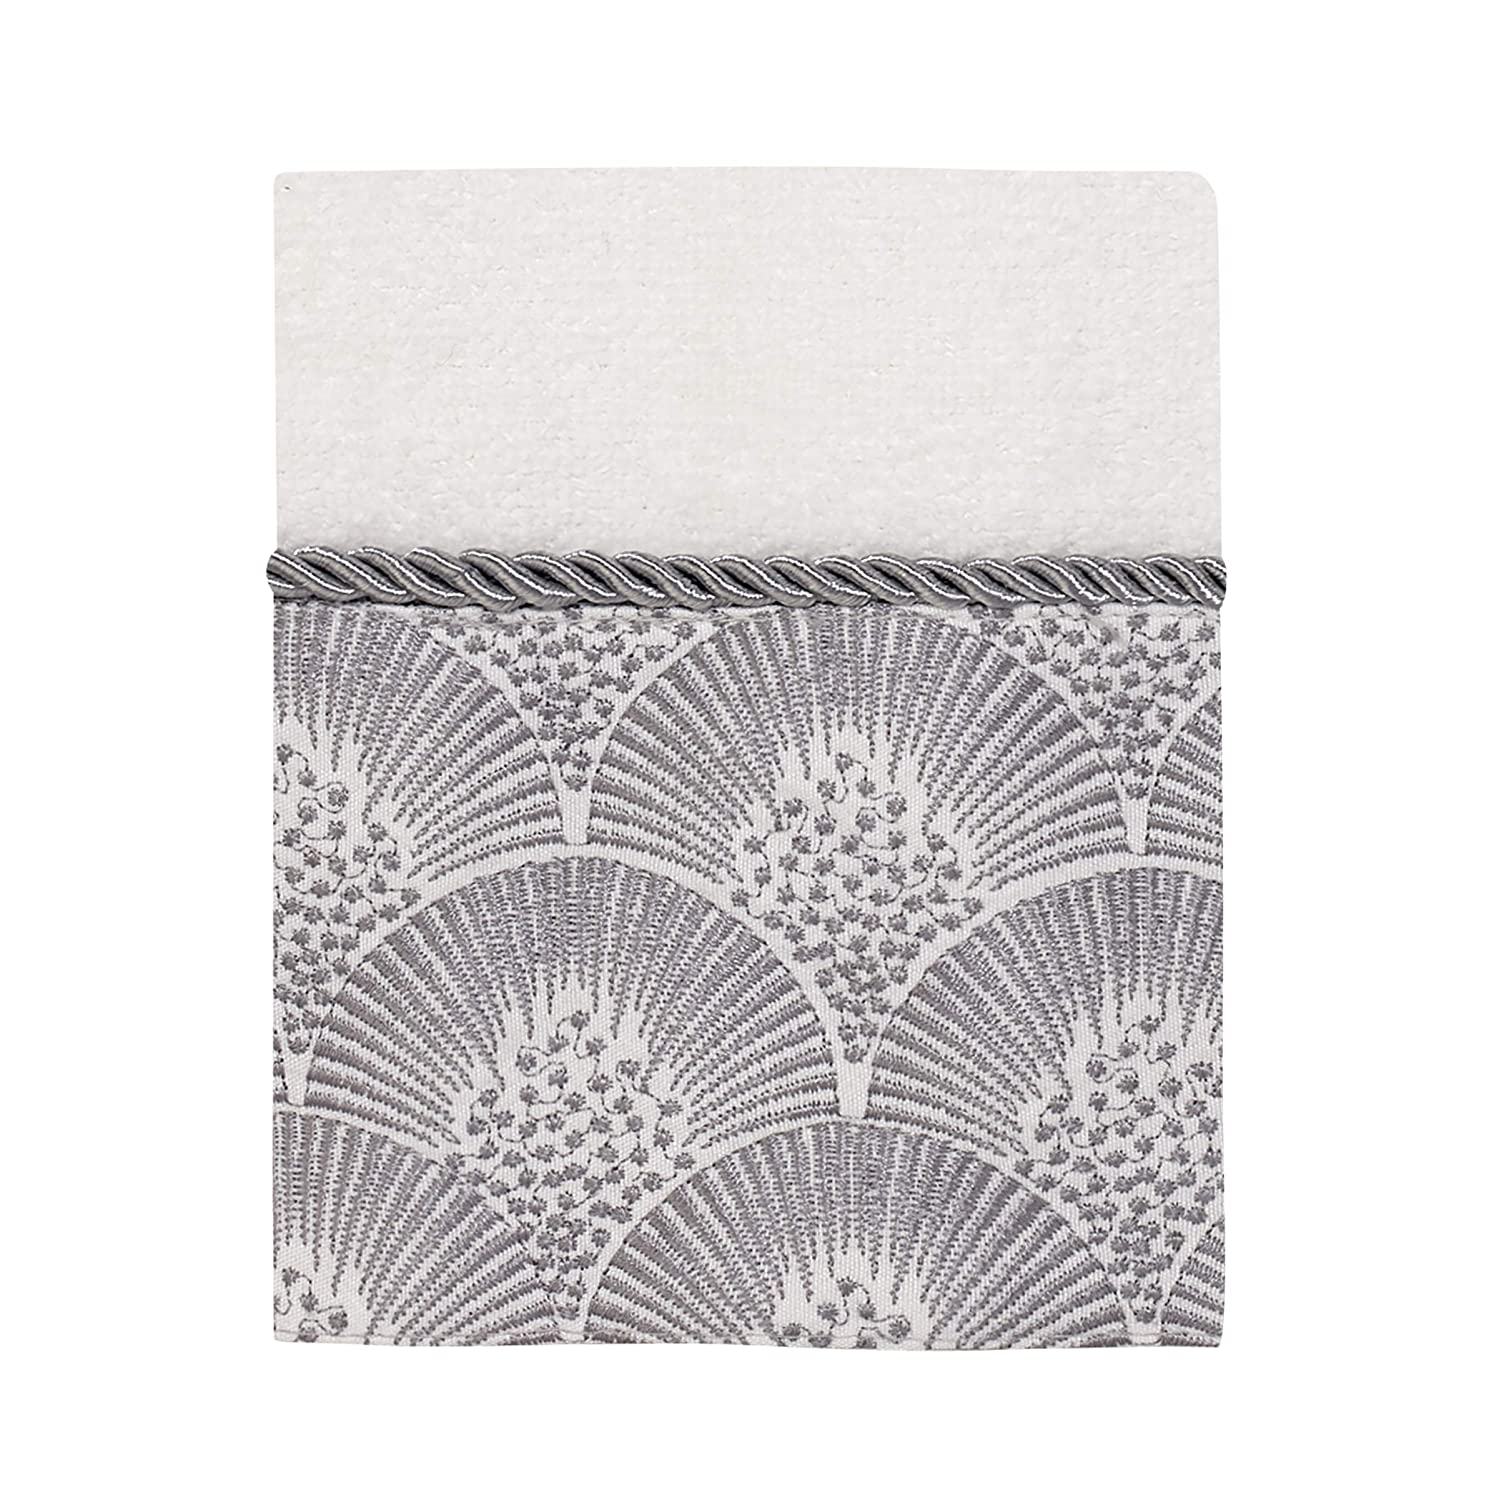 Avanti Linens Deco Shell Washcloth One Size White